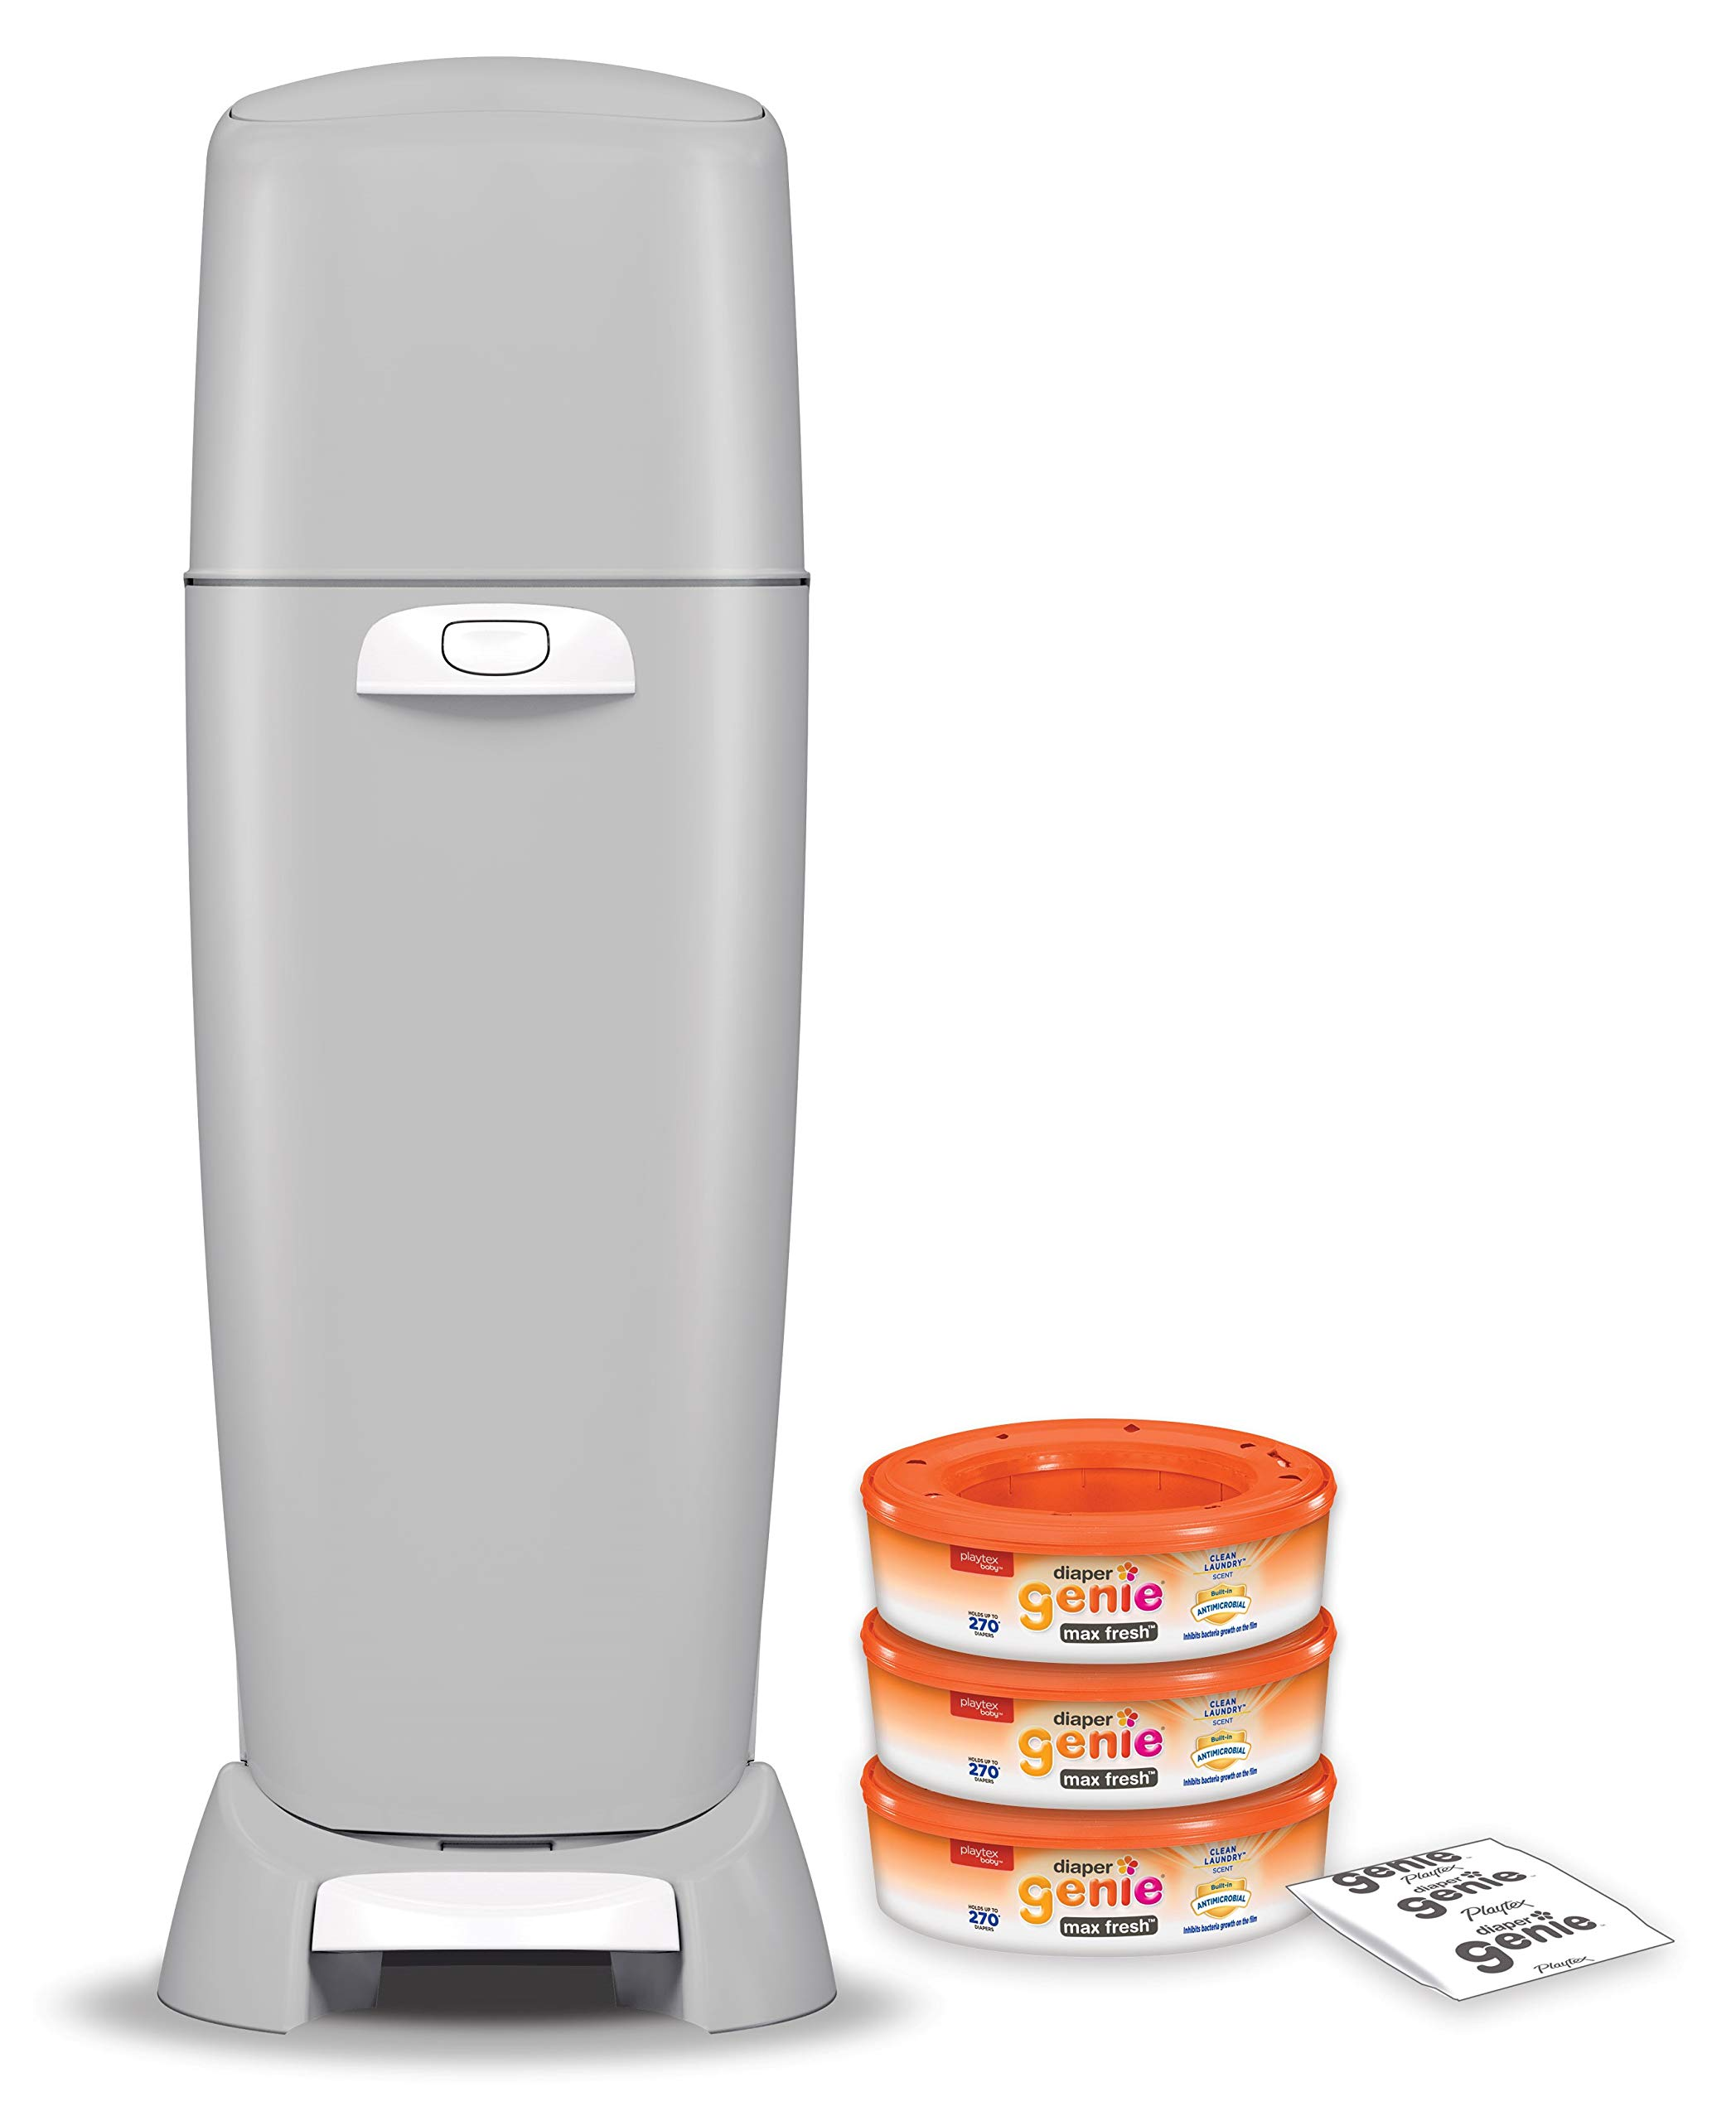 Playtex Diaper Genie Complete Diaper Pail Grey with Built-in Odor Controlling Antimicrobial Includes 1 Pail and 3 Max Fresh Refills